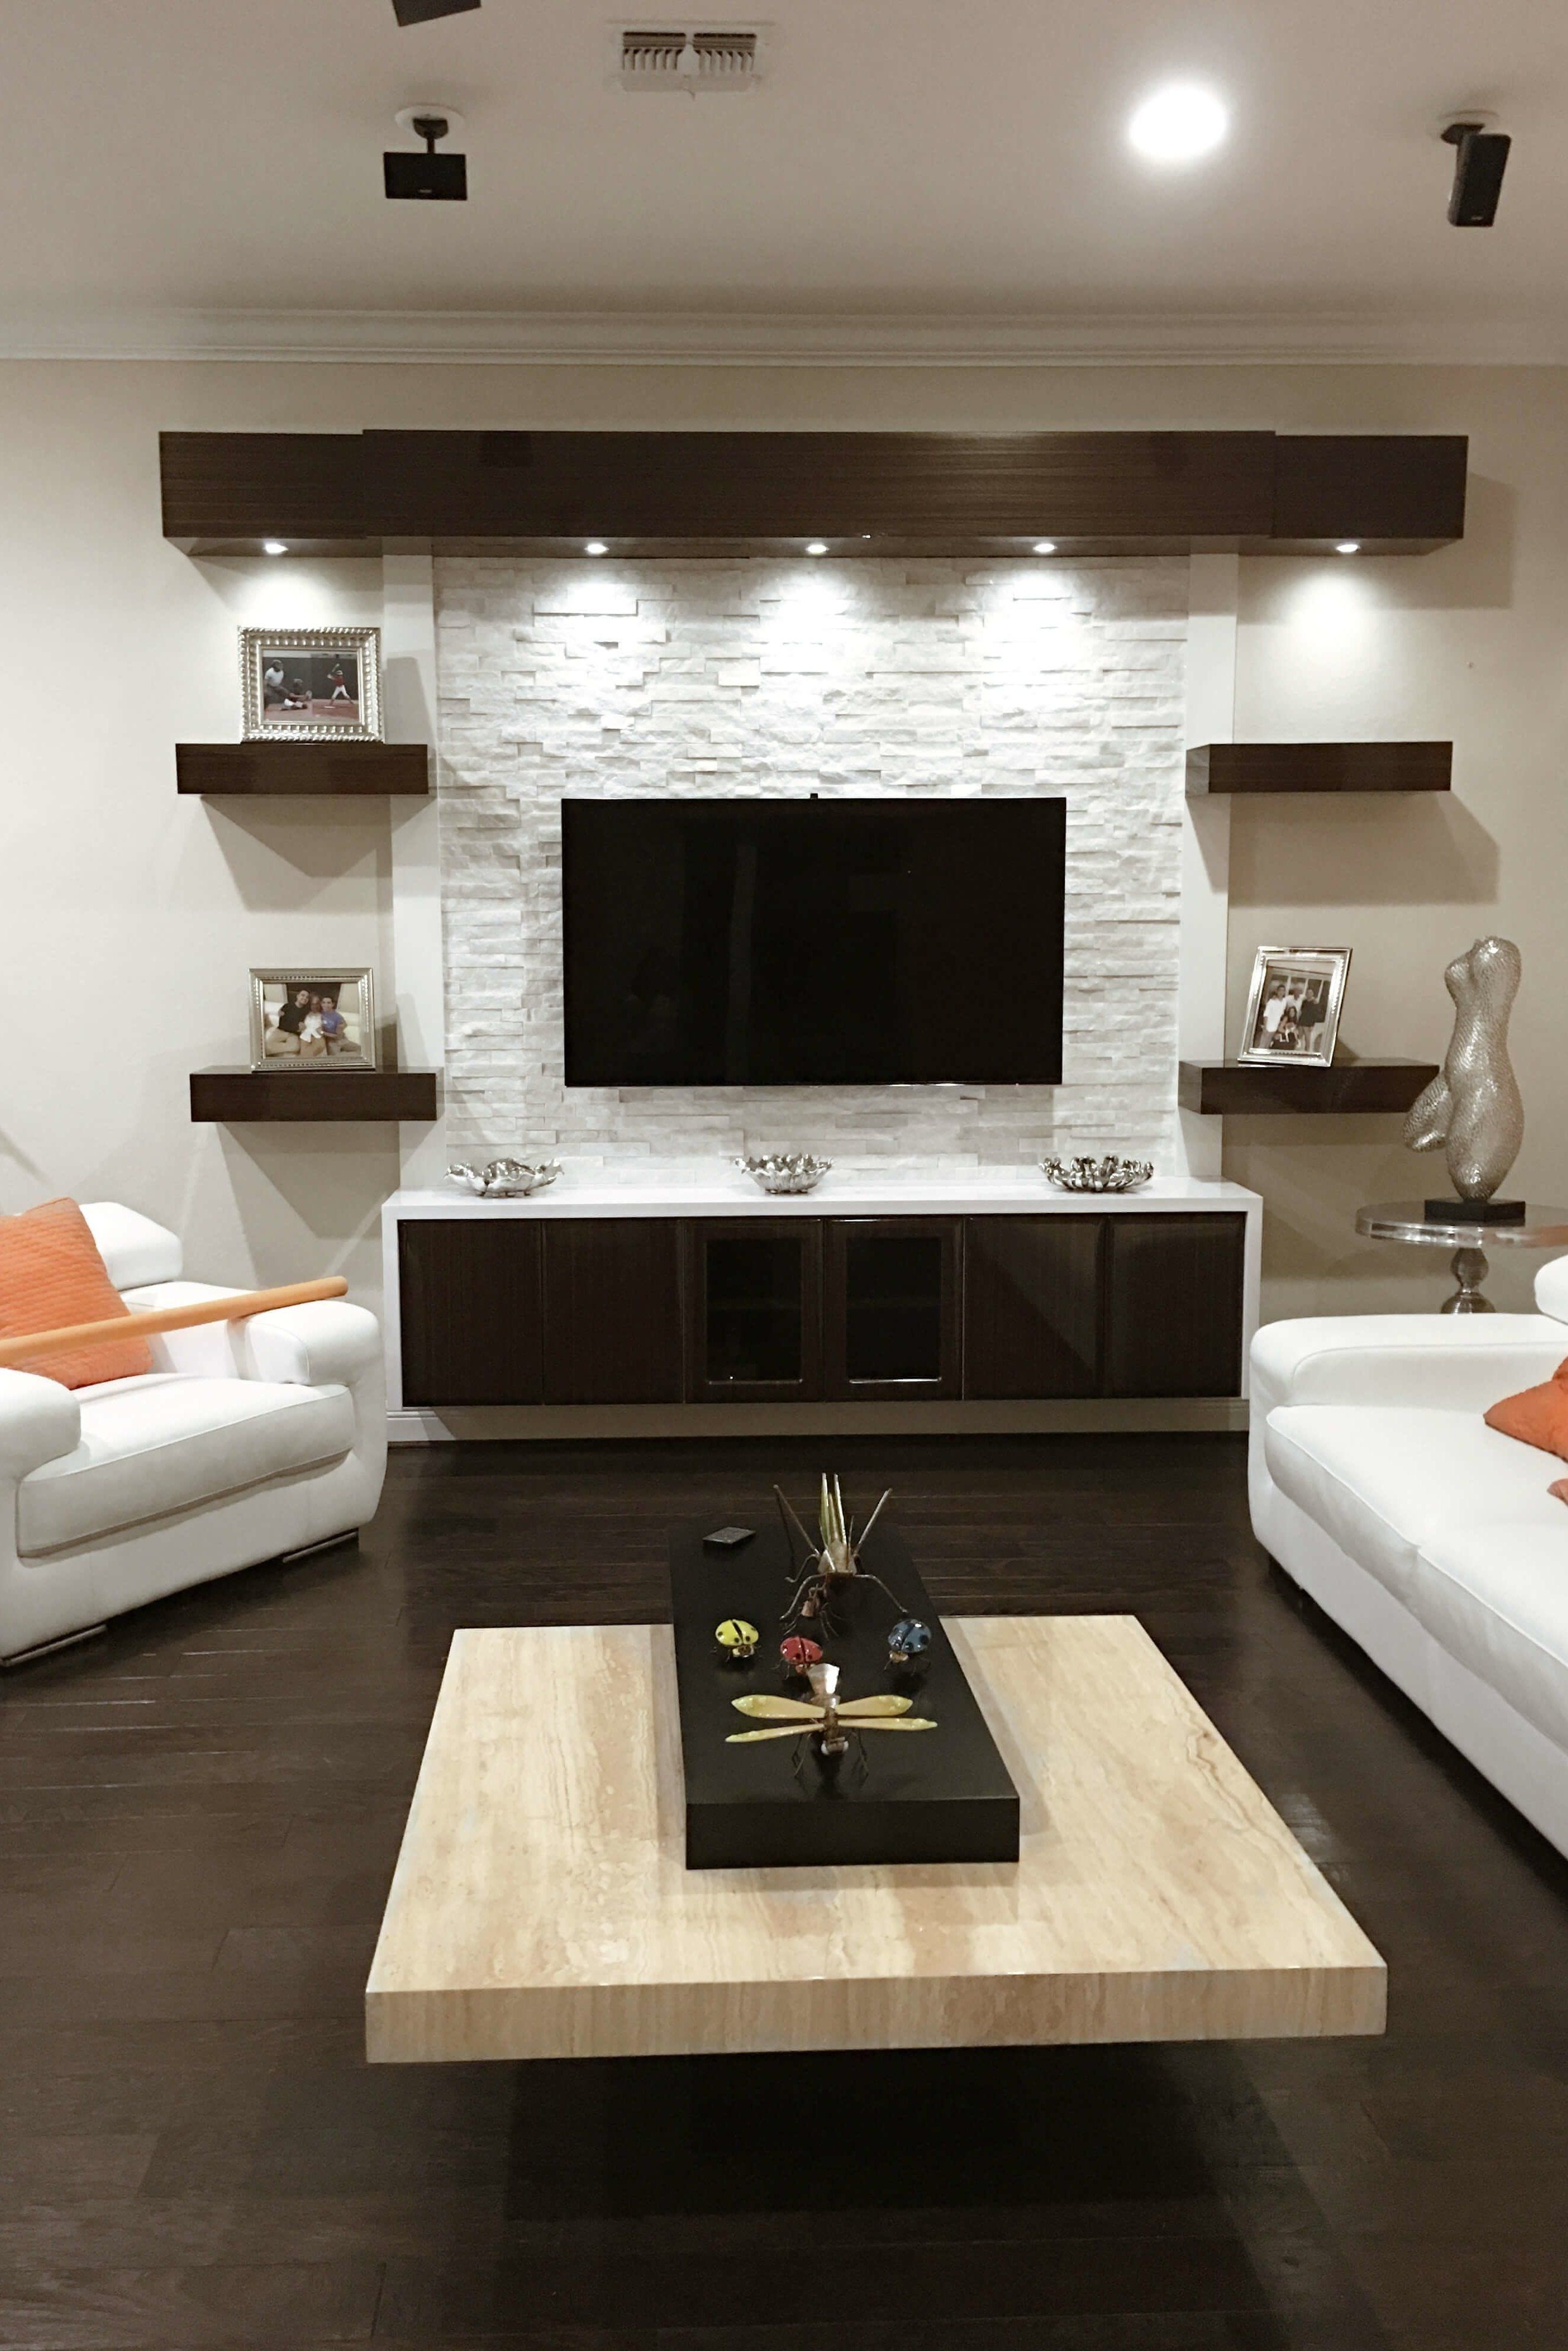 3 DIY Entertainment Center Ideas and Designs For Your New Home